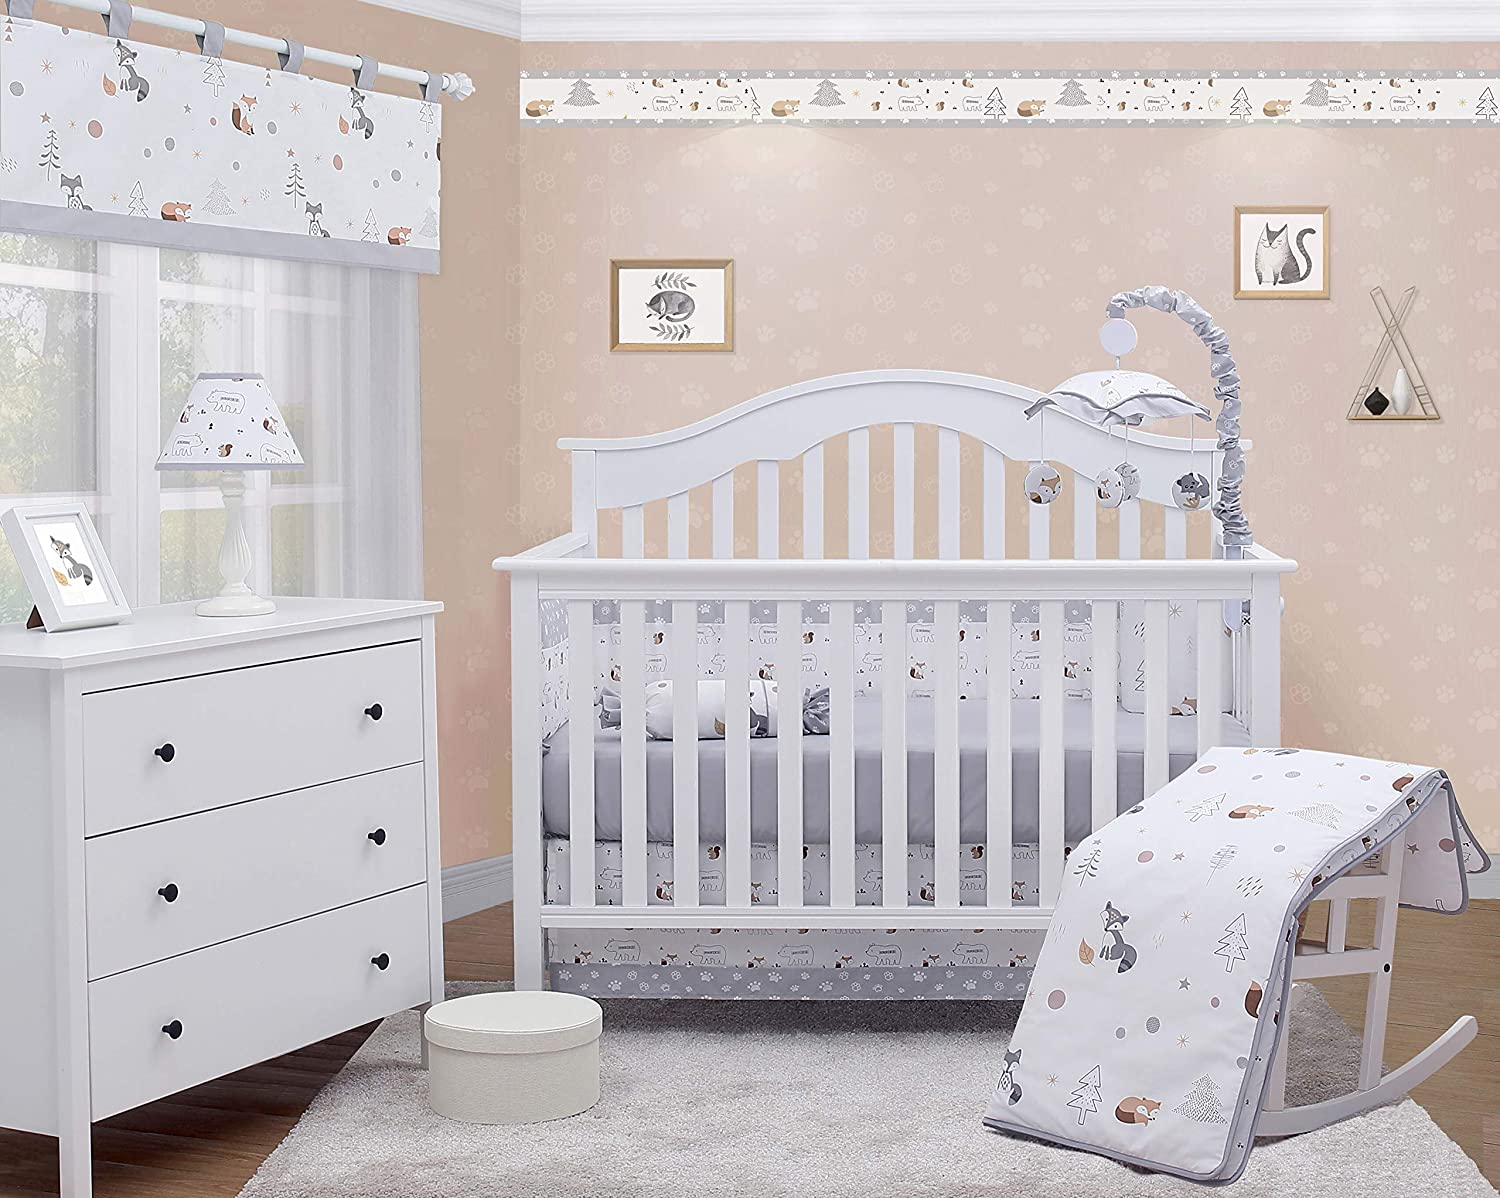 OptimaBaby Woodland 6 Piece Baby Nursery Crib Bedding Set, Forest Fox, White/Gray/Yellow/Brown